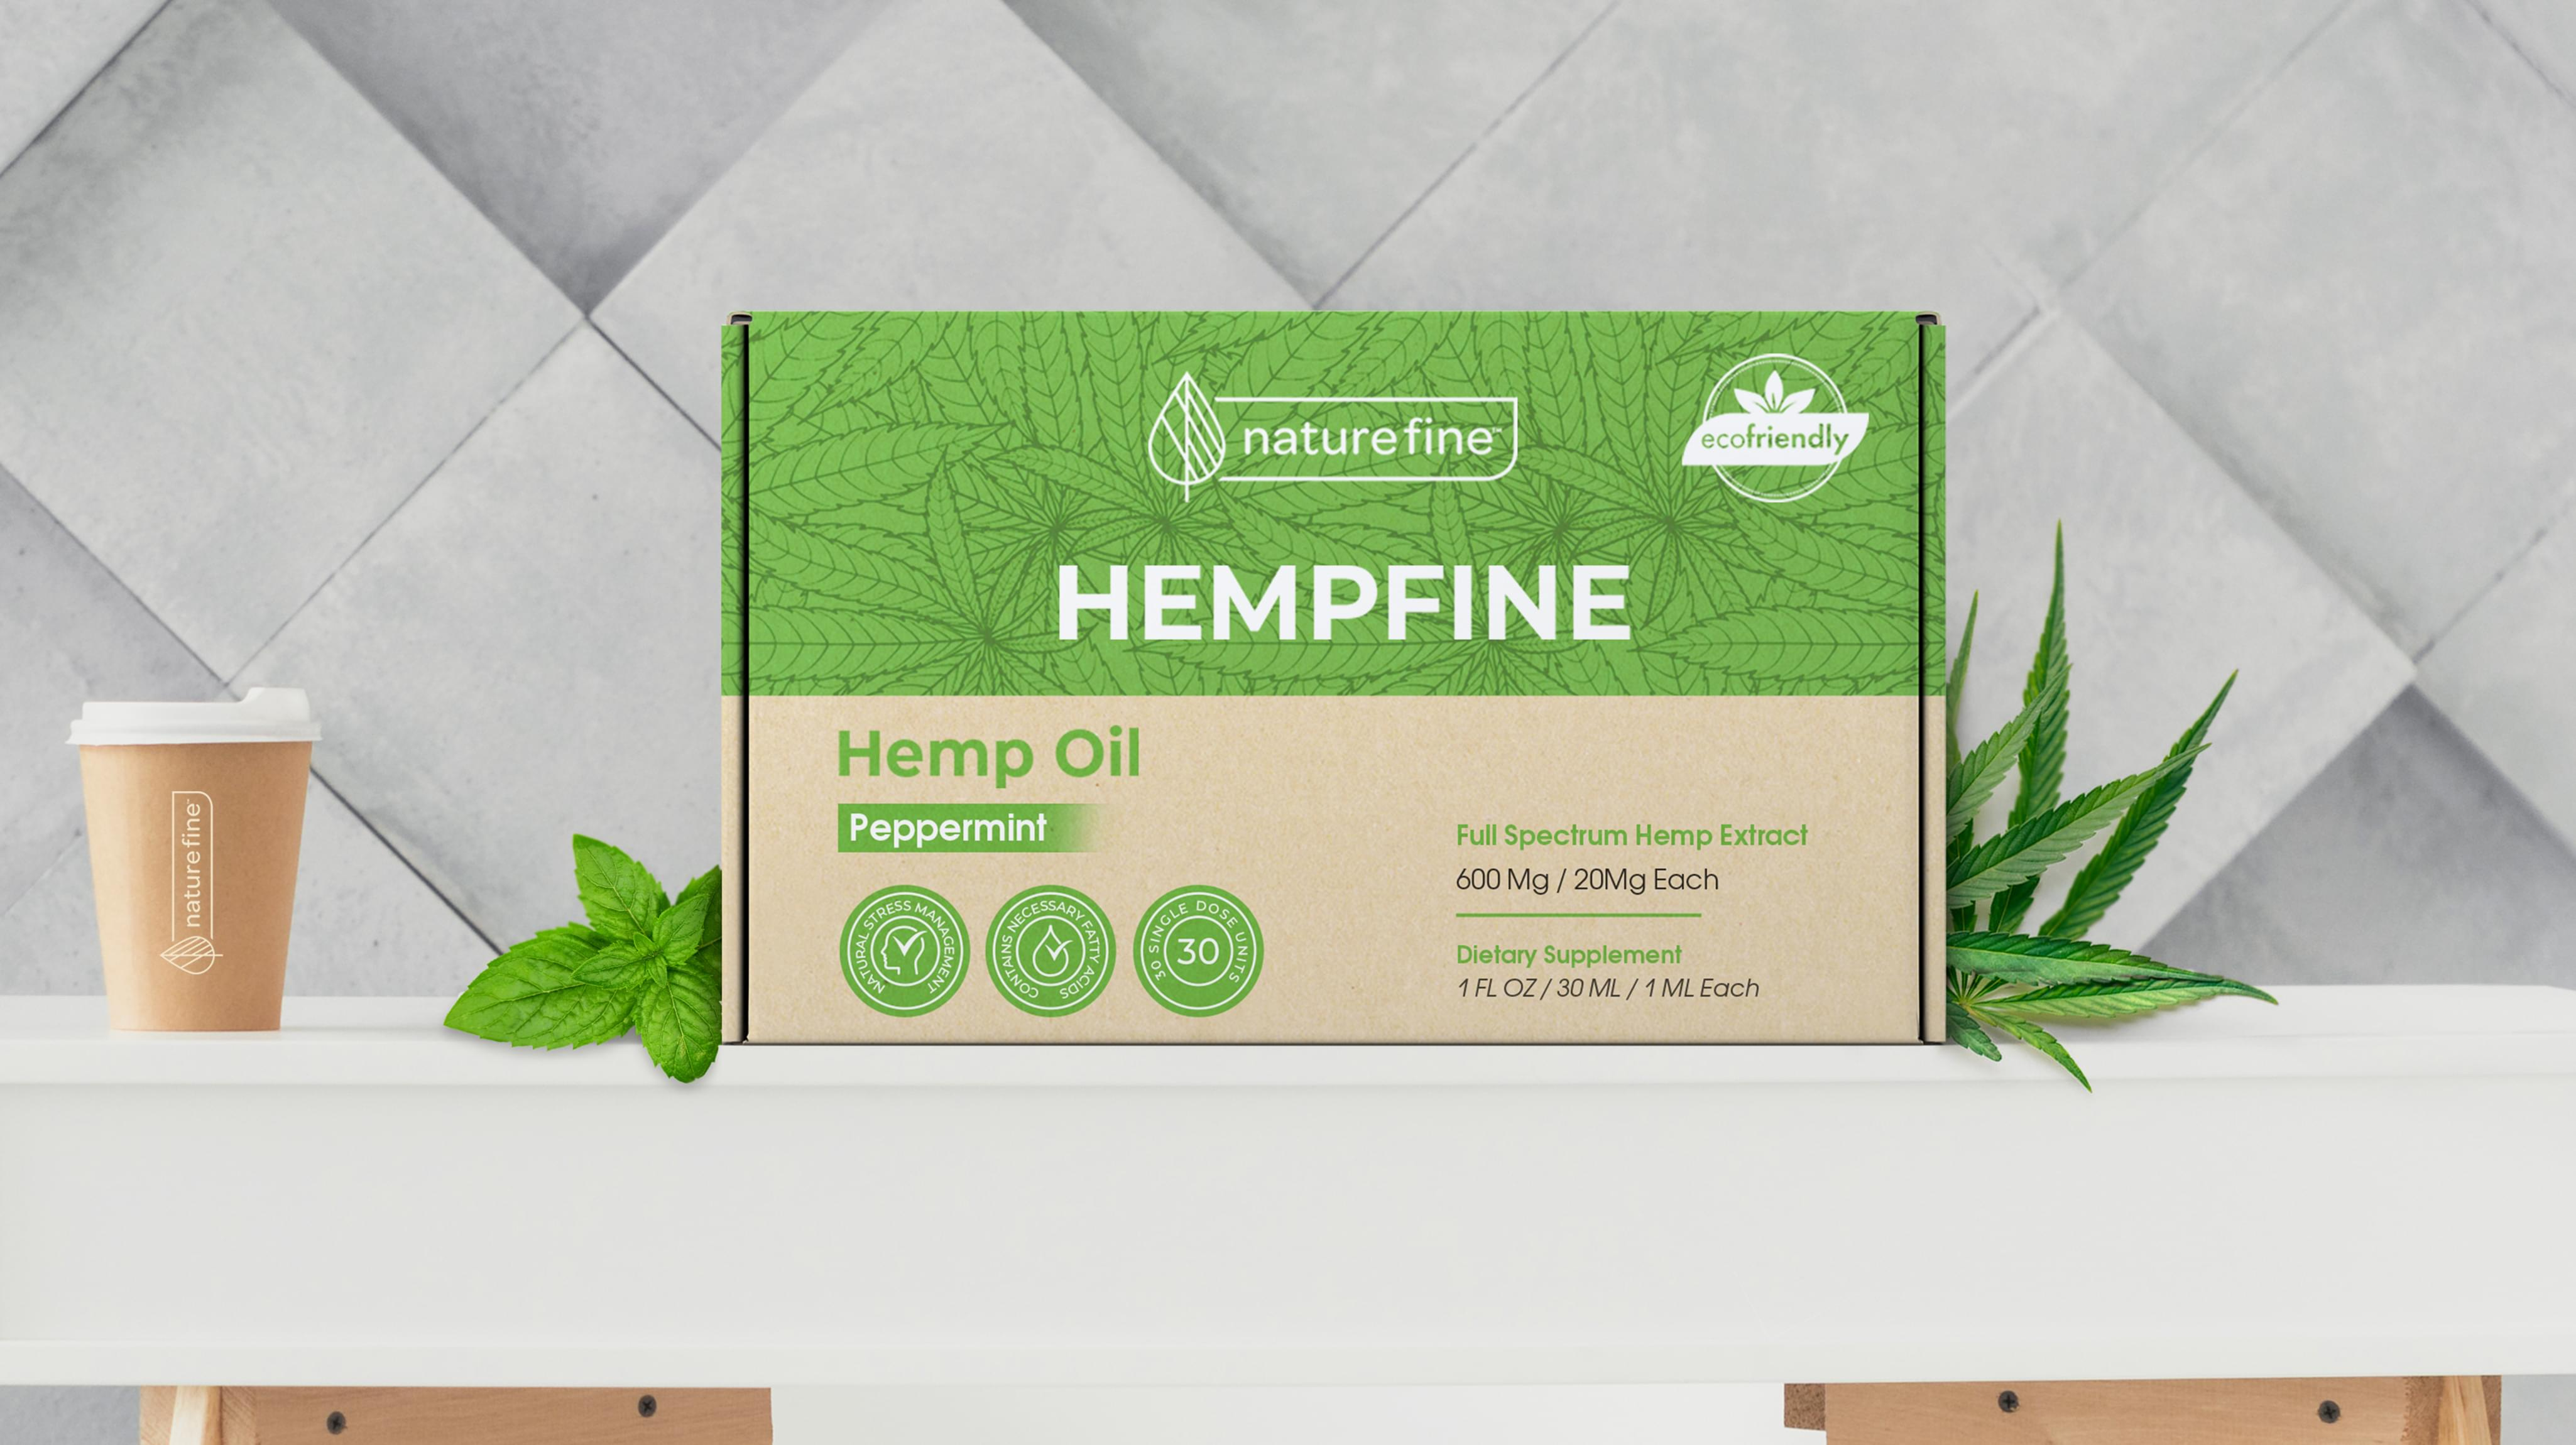 NATURE FINE Packaging